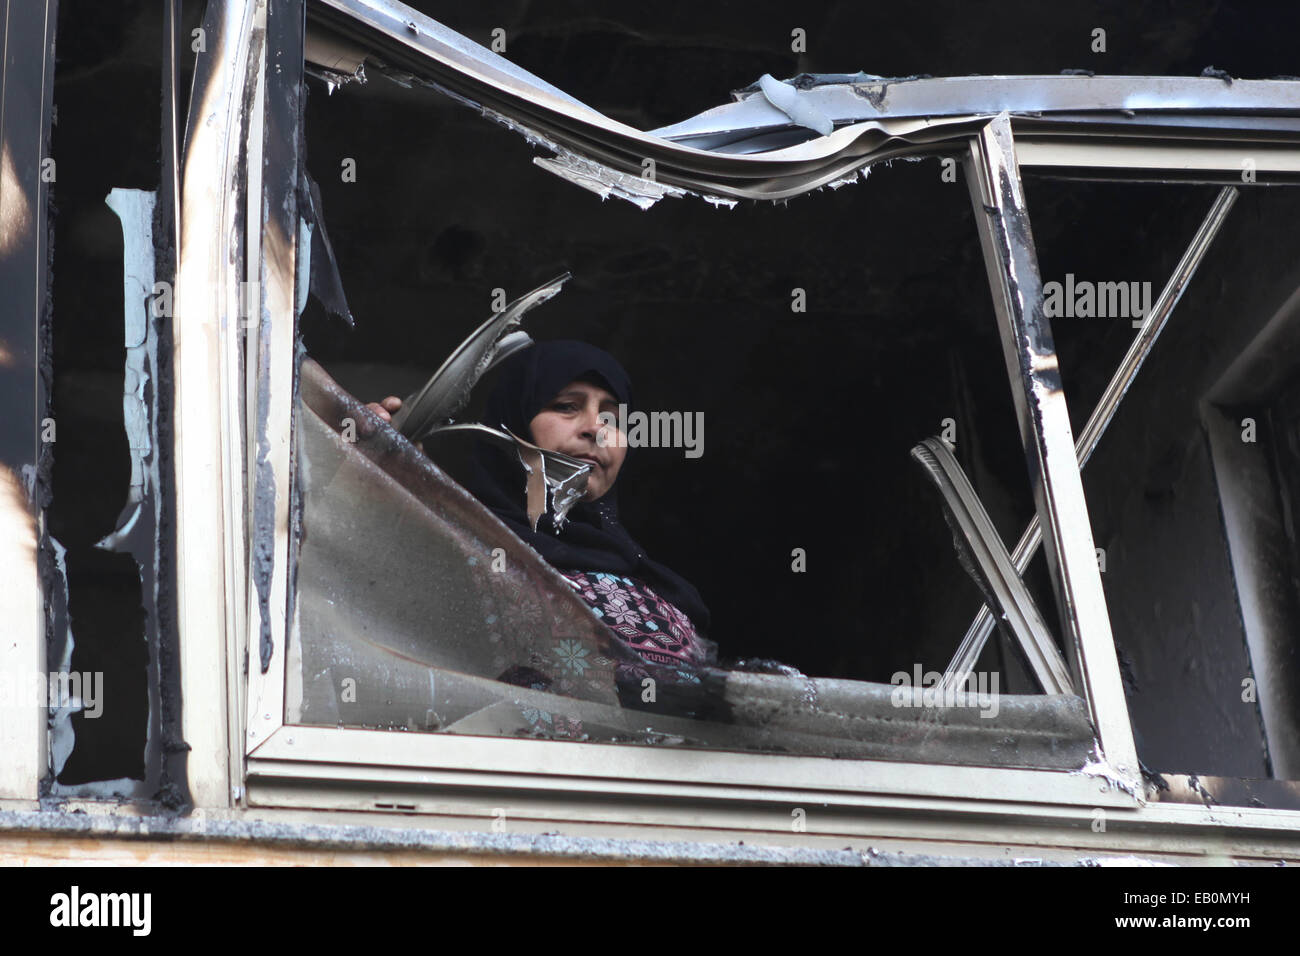 Ramallah, Ramallah. 23rd Nov, 2014. A Palestinian woman looks from a window of her relative's house which was - Stock Image